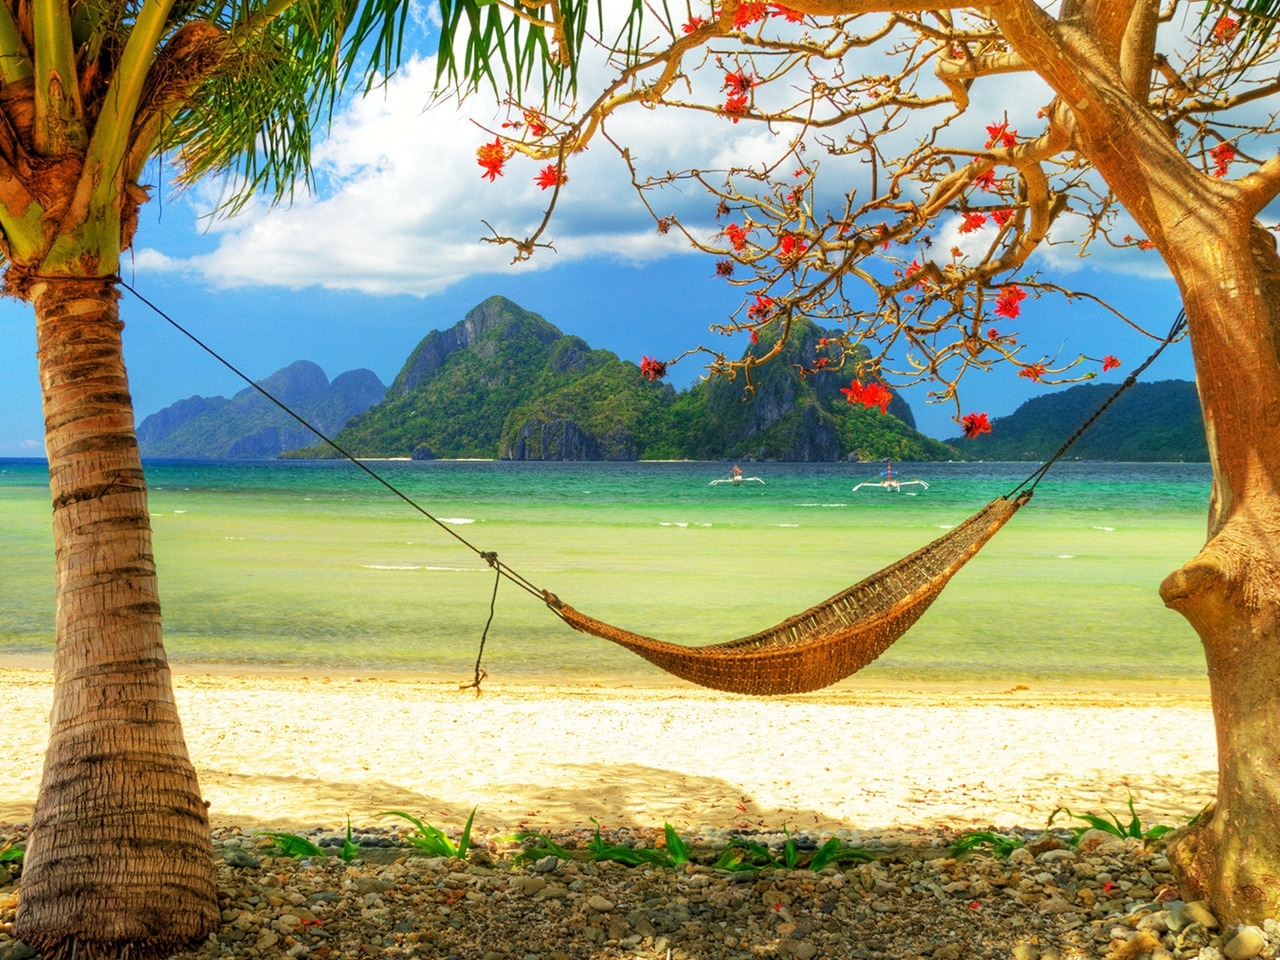 23313 download wallpaper Landscape, Sea, Beach, Palms screensavers and pictures for free